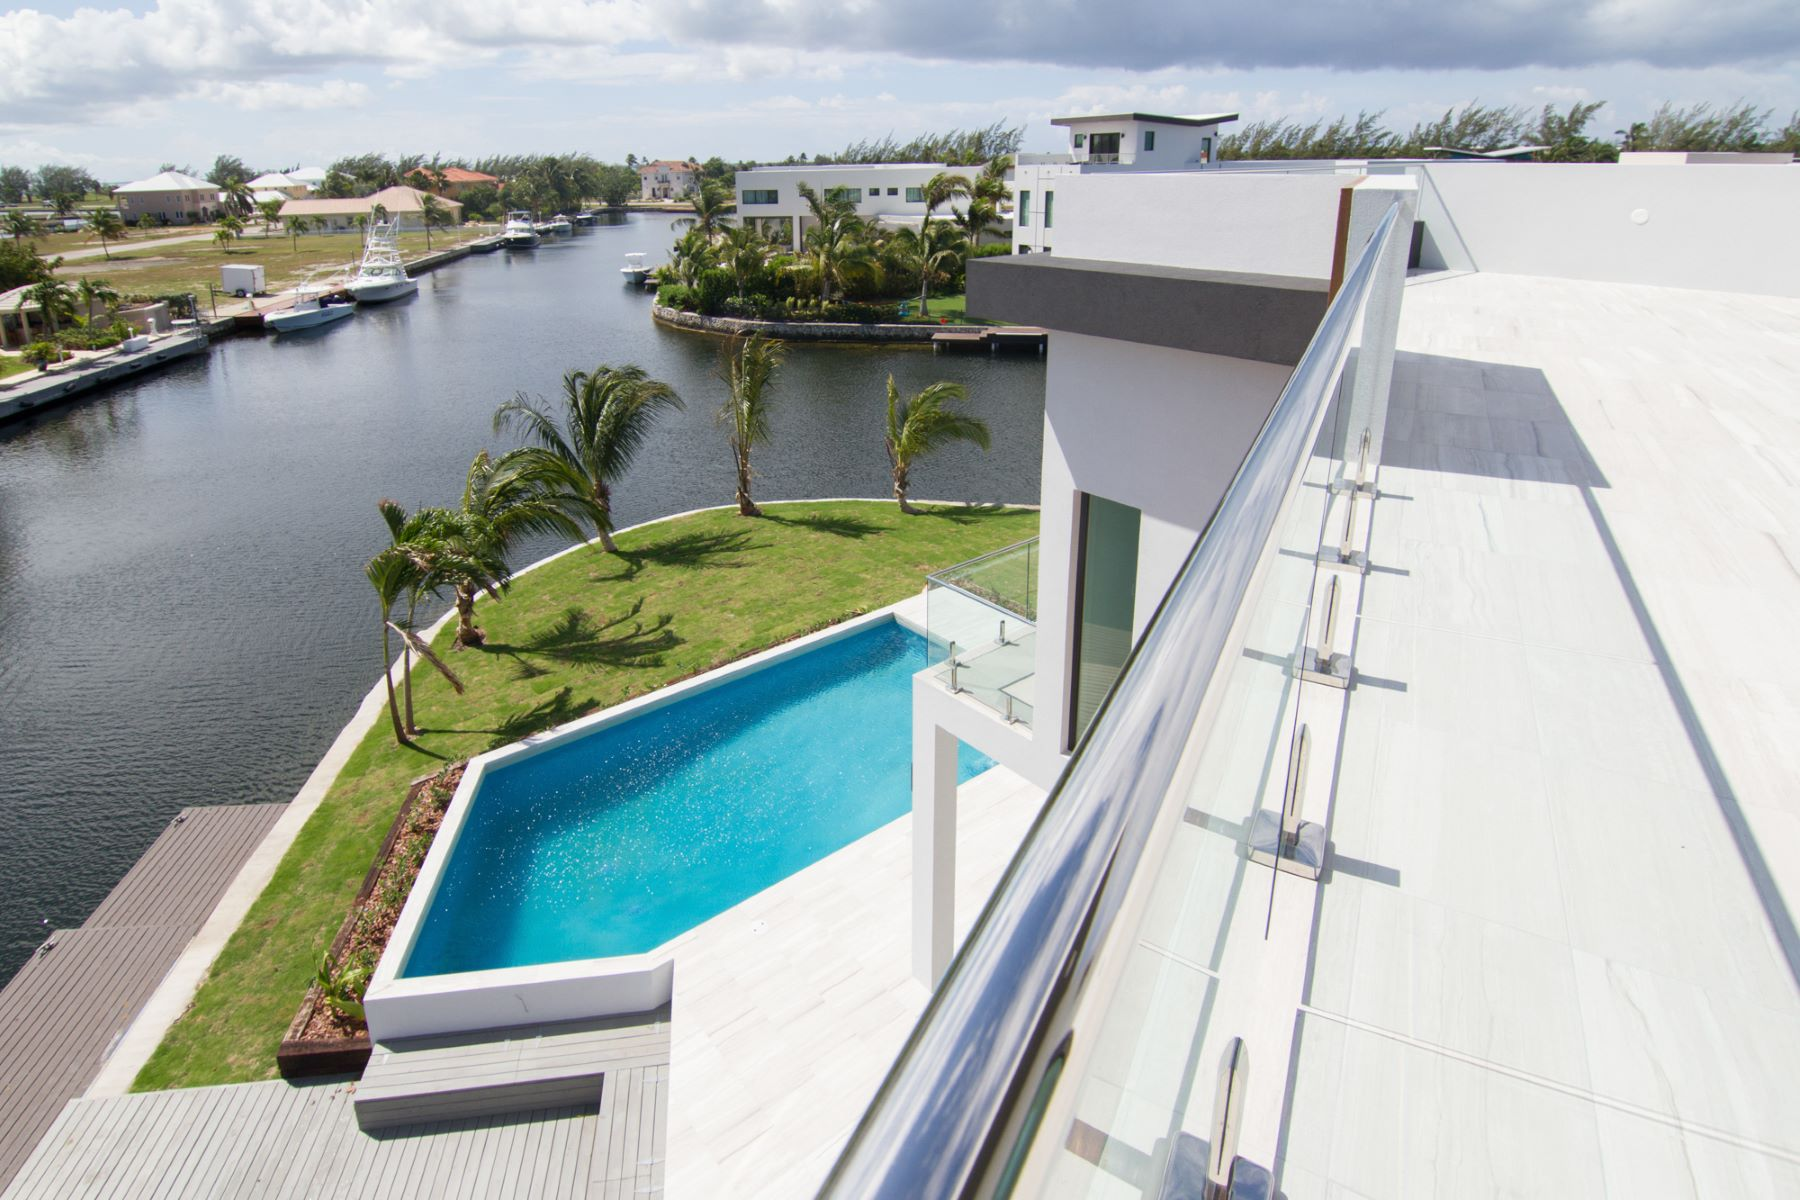 Additional photo for property listing at HQ Contemporary Crystal Harbour Home Crystal Harbour, Gran Caimán Islas Caimán